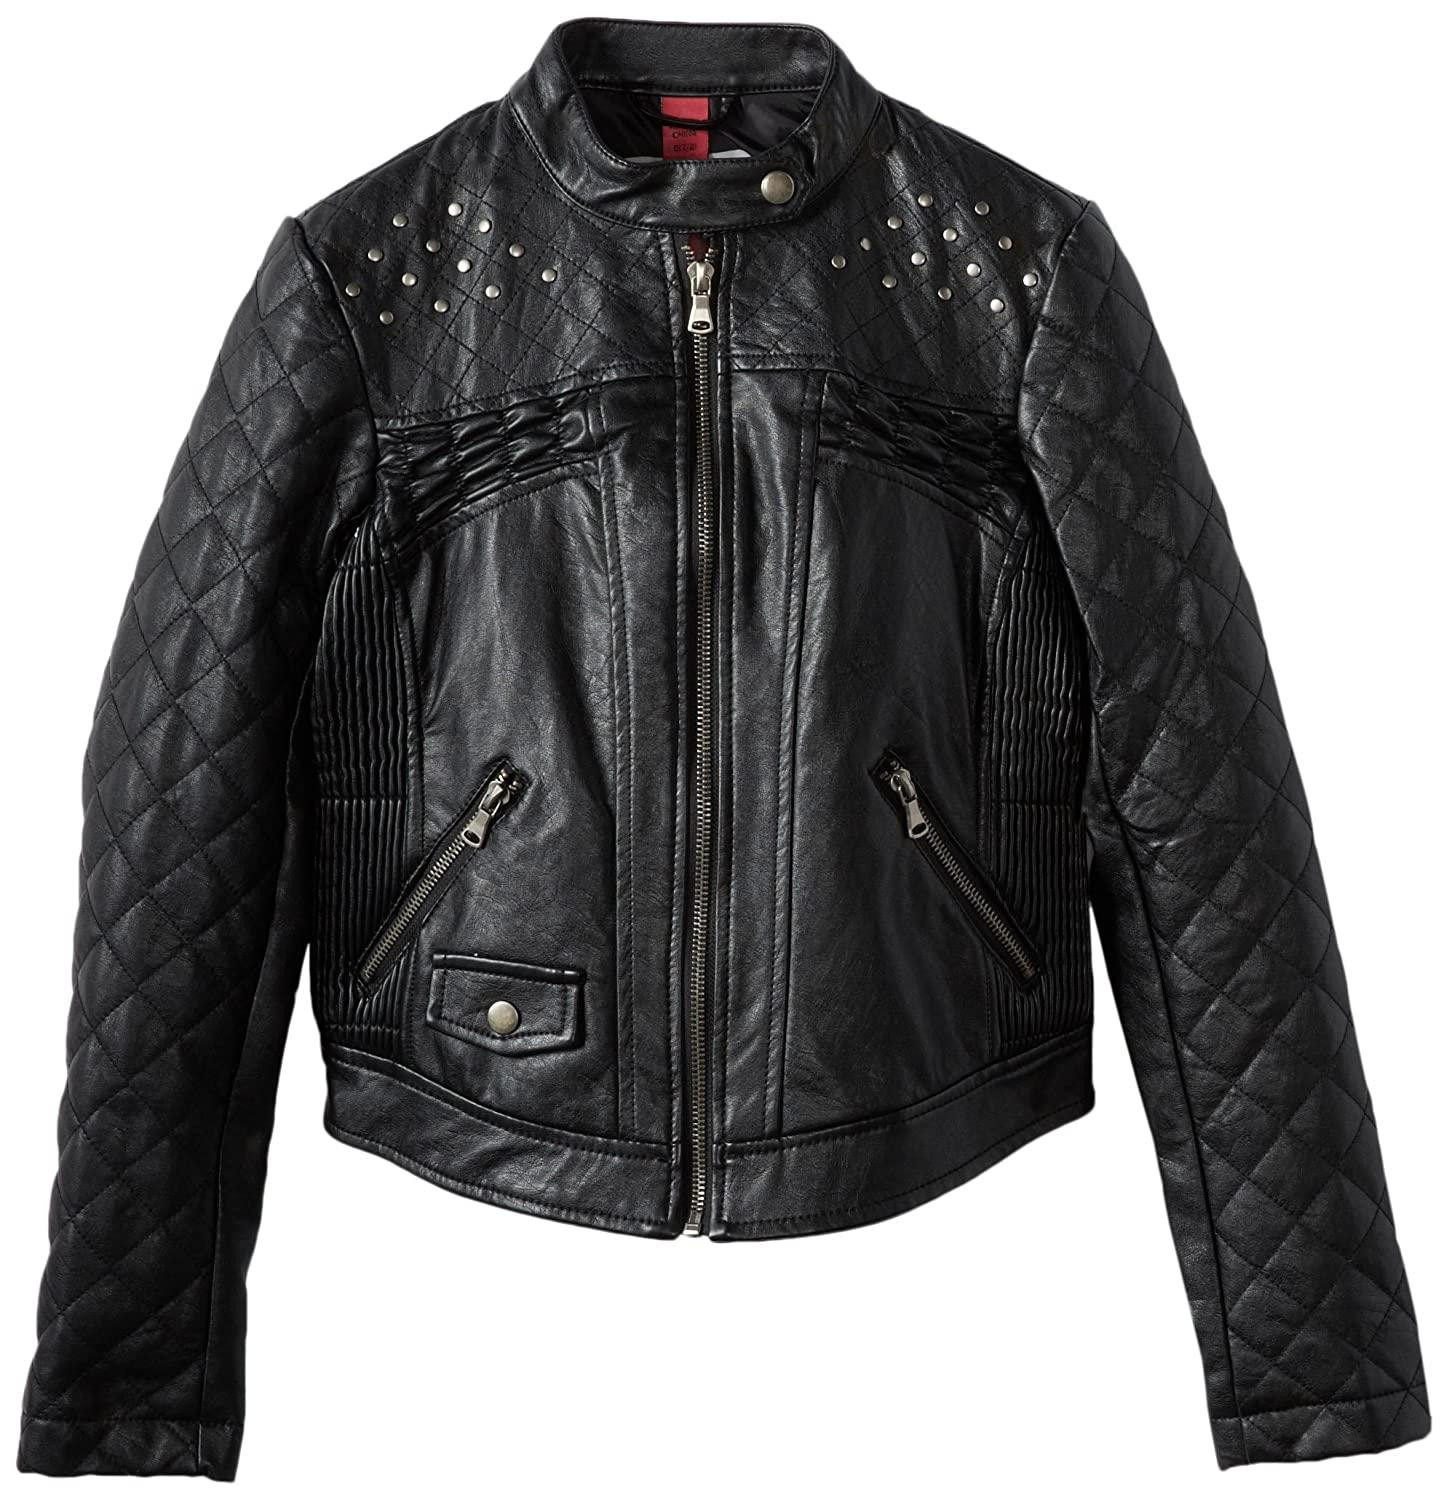 Collection B Girls 7-16 Faux Leather Jacket with Studs At Shoulders